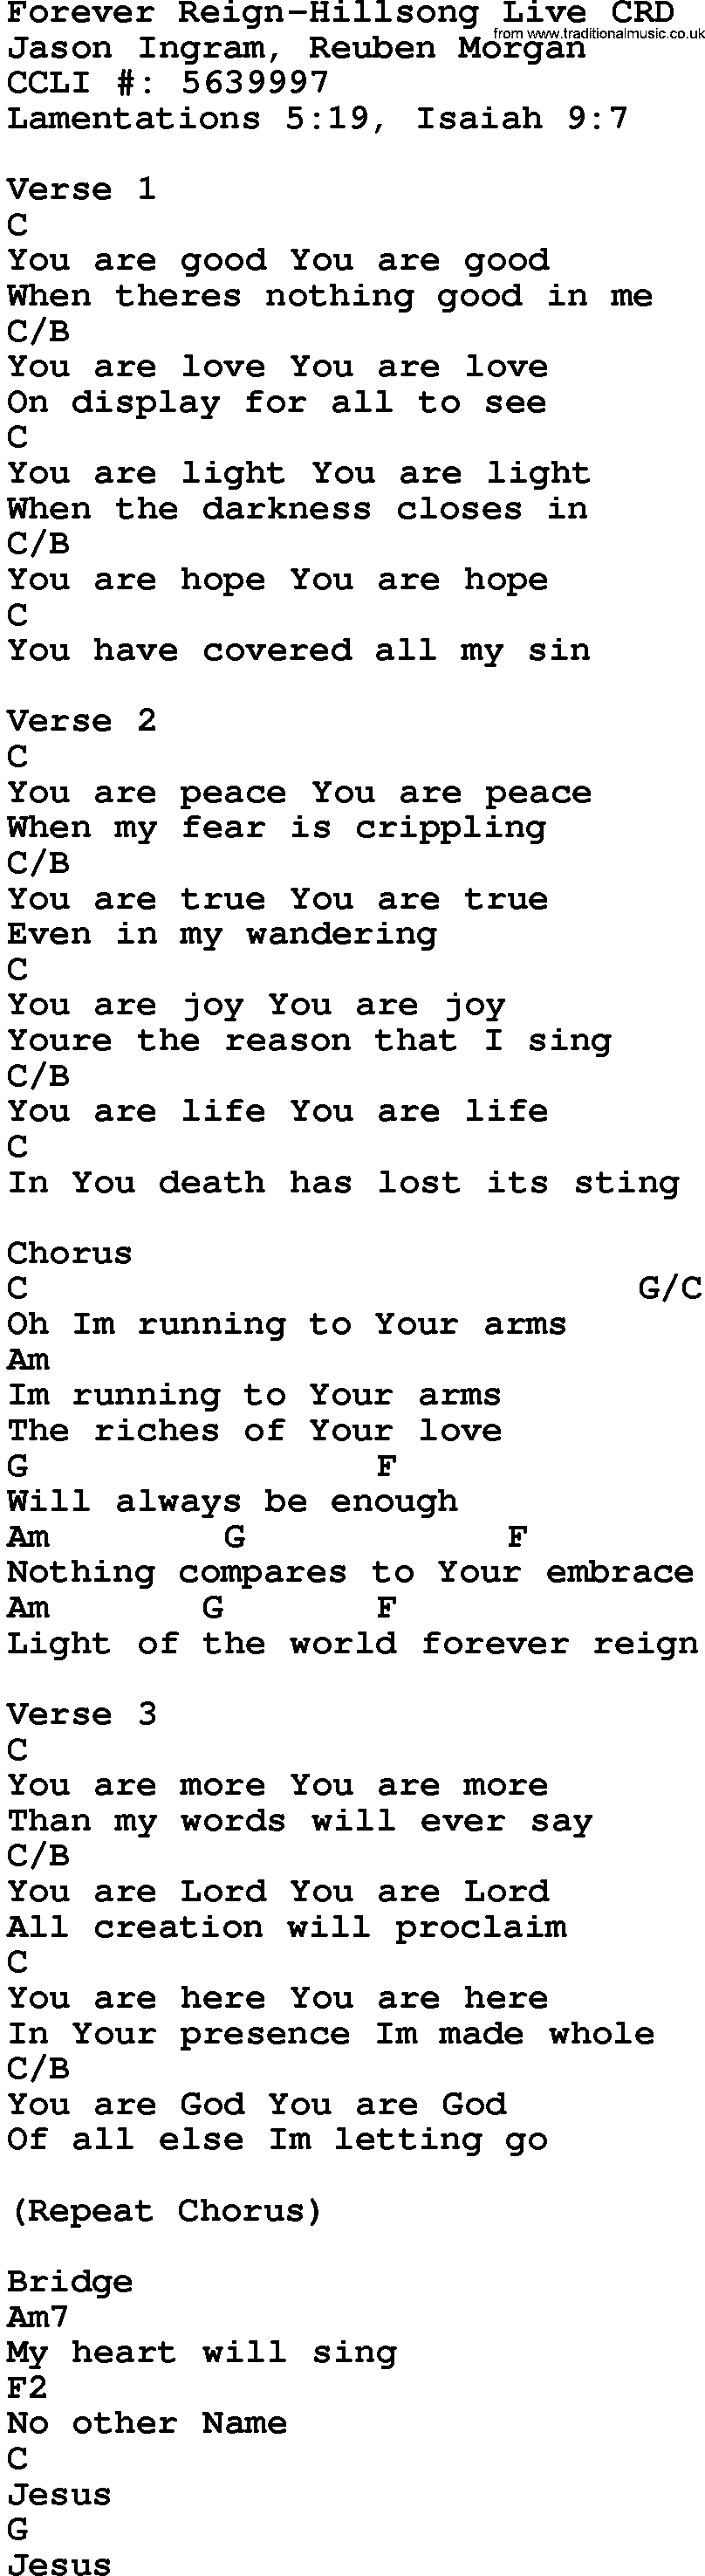 Christian music chords and lyrics download these lyrics and gospel song forever reign hillsong live lyrics and chords hexwebz Images